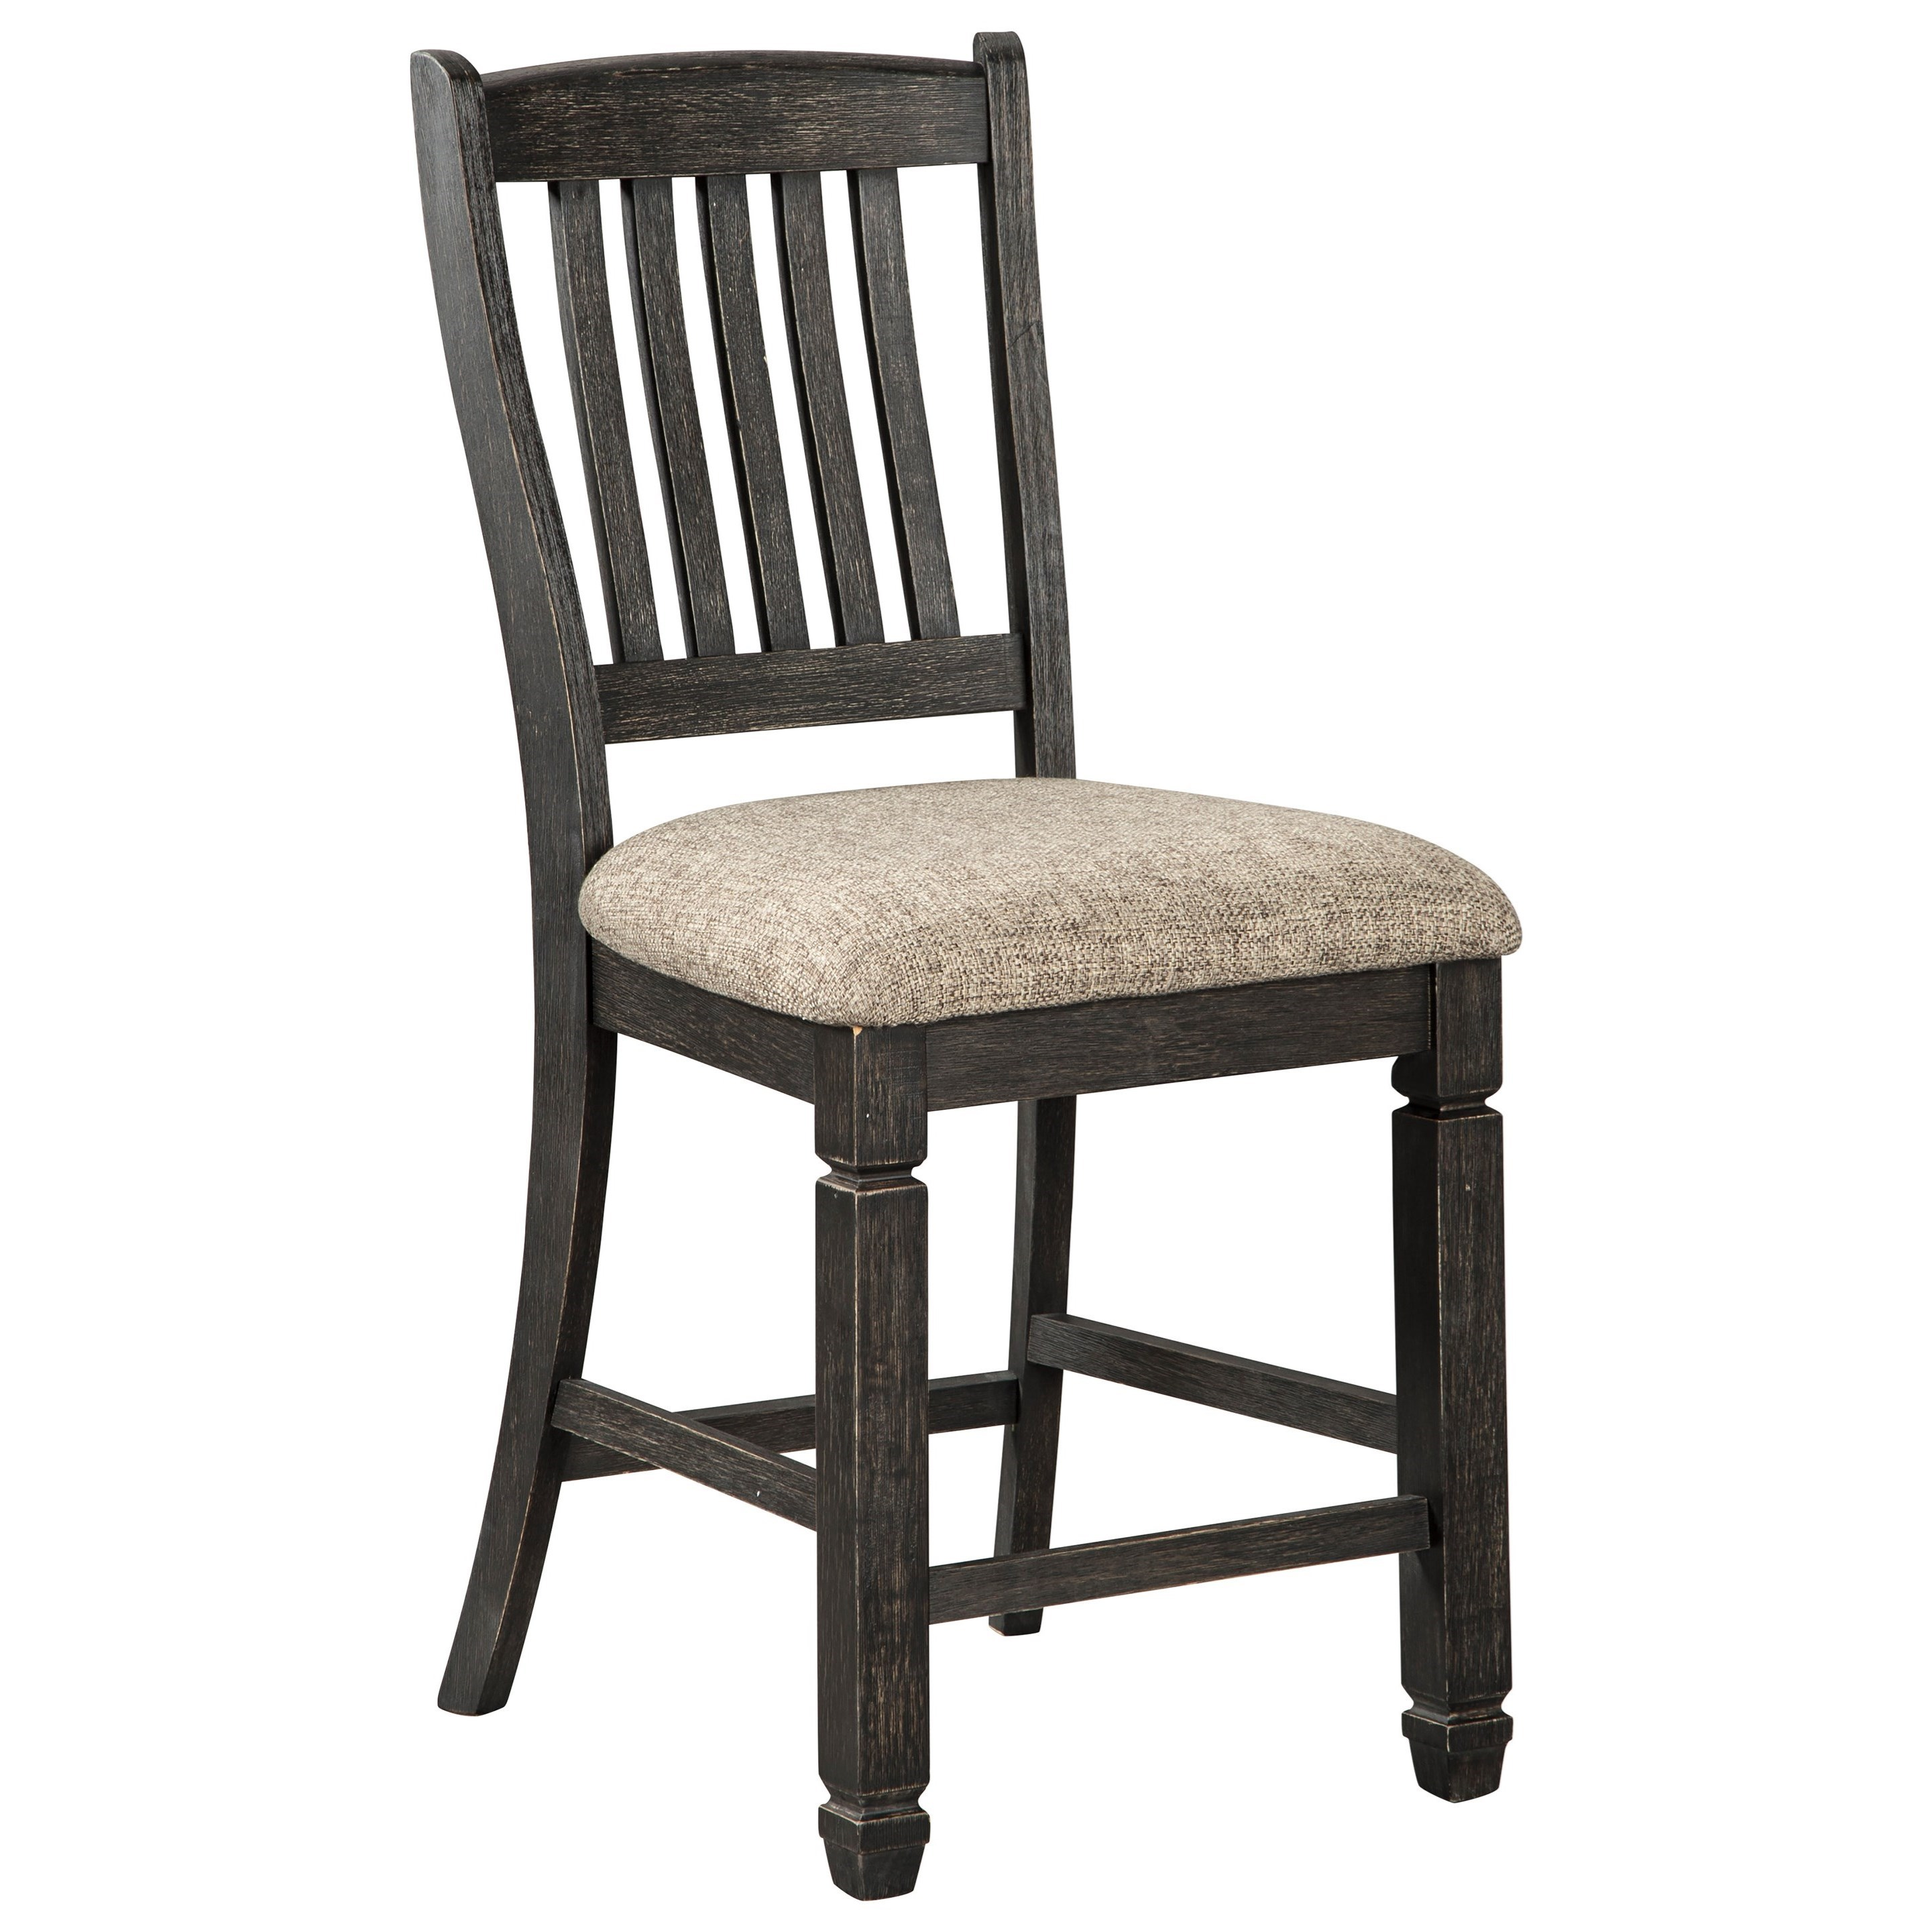 Tyler Creek Upholstered Bar Stool by Signature Design by Ashley at Beck's Furniture